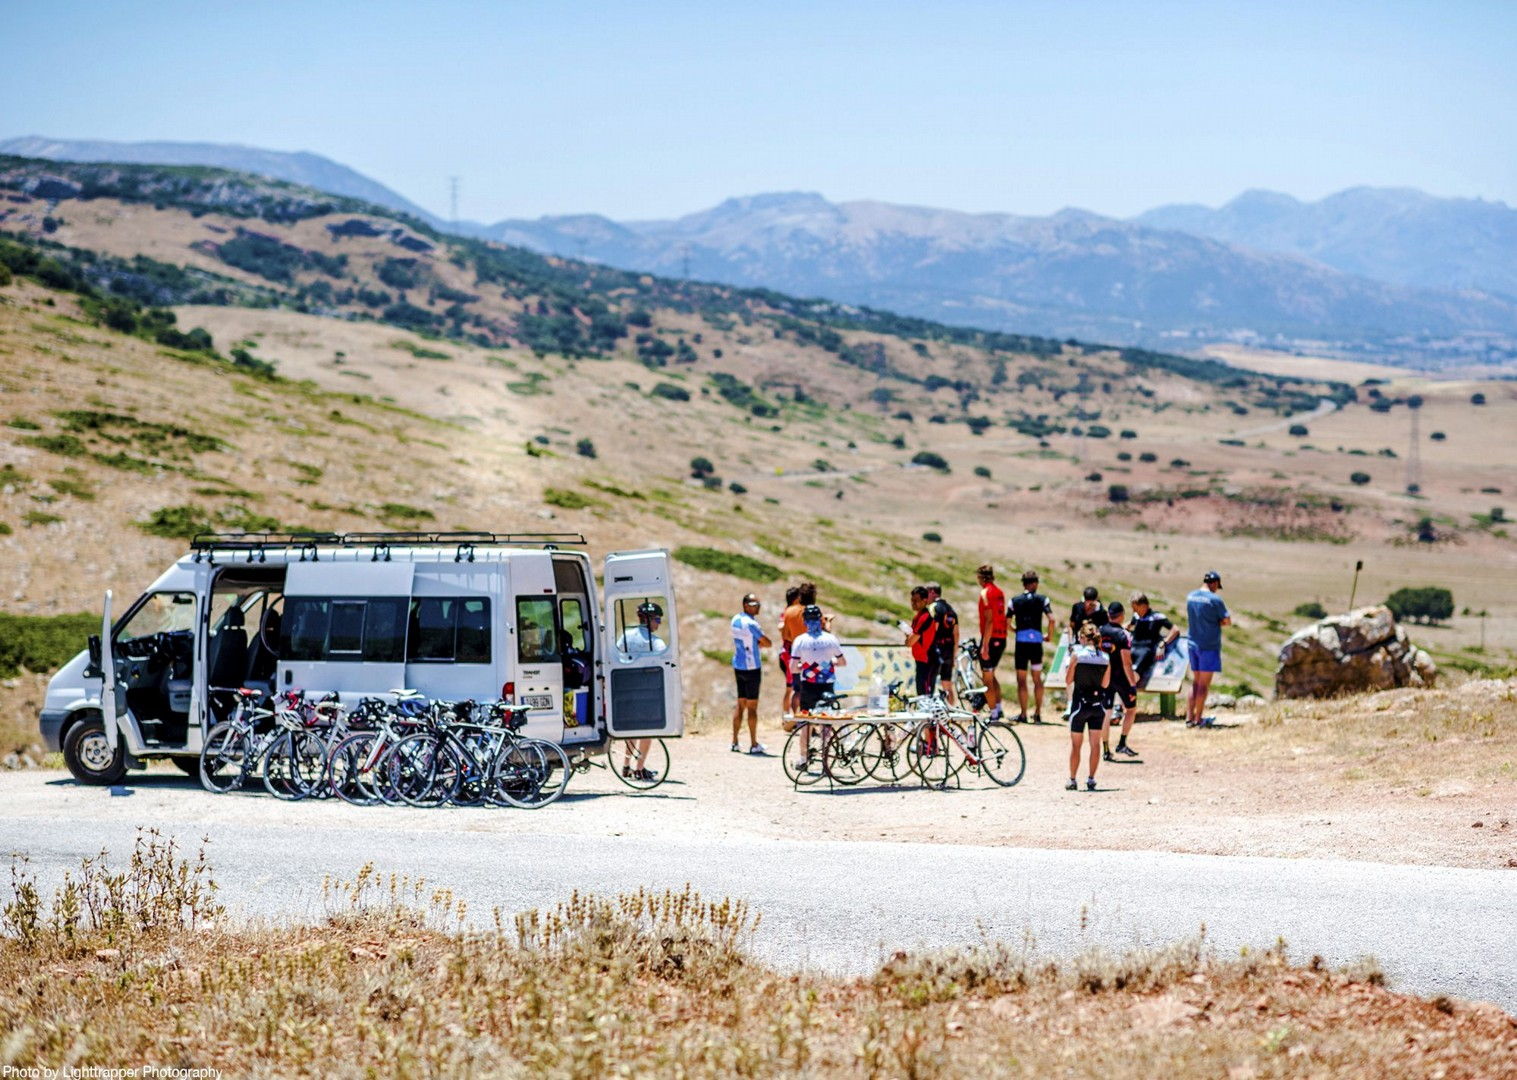 group-picnics-lunch-guided-tour-road-cycling-fun-spain.jpg - Southern Spain - Andalucia - Los Pueblos Blancos - Guided Road Cycling Holiday - Road Cycling